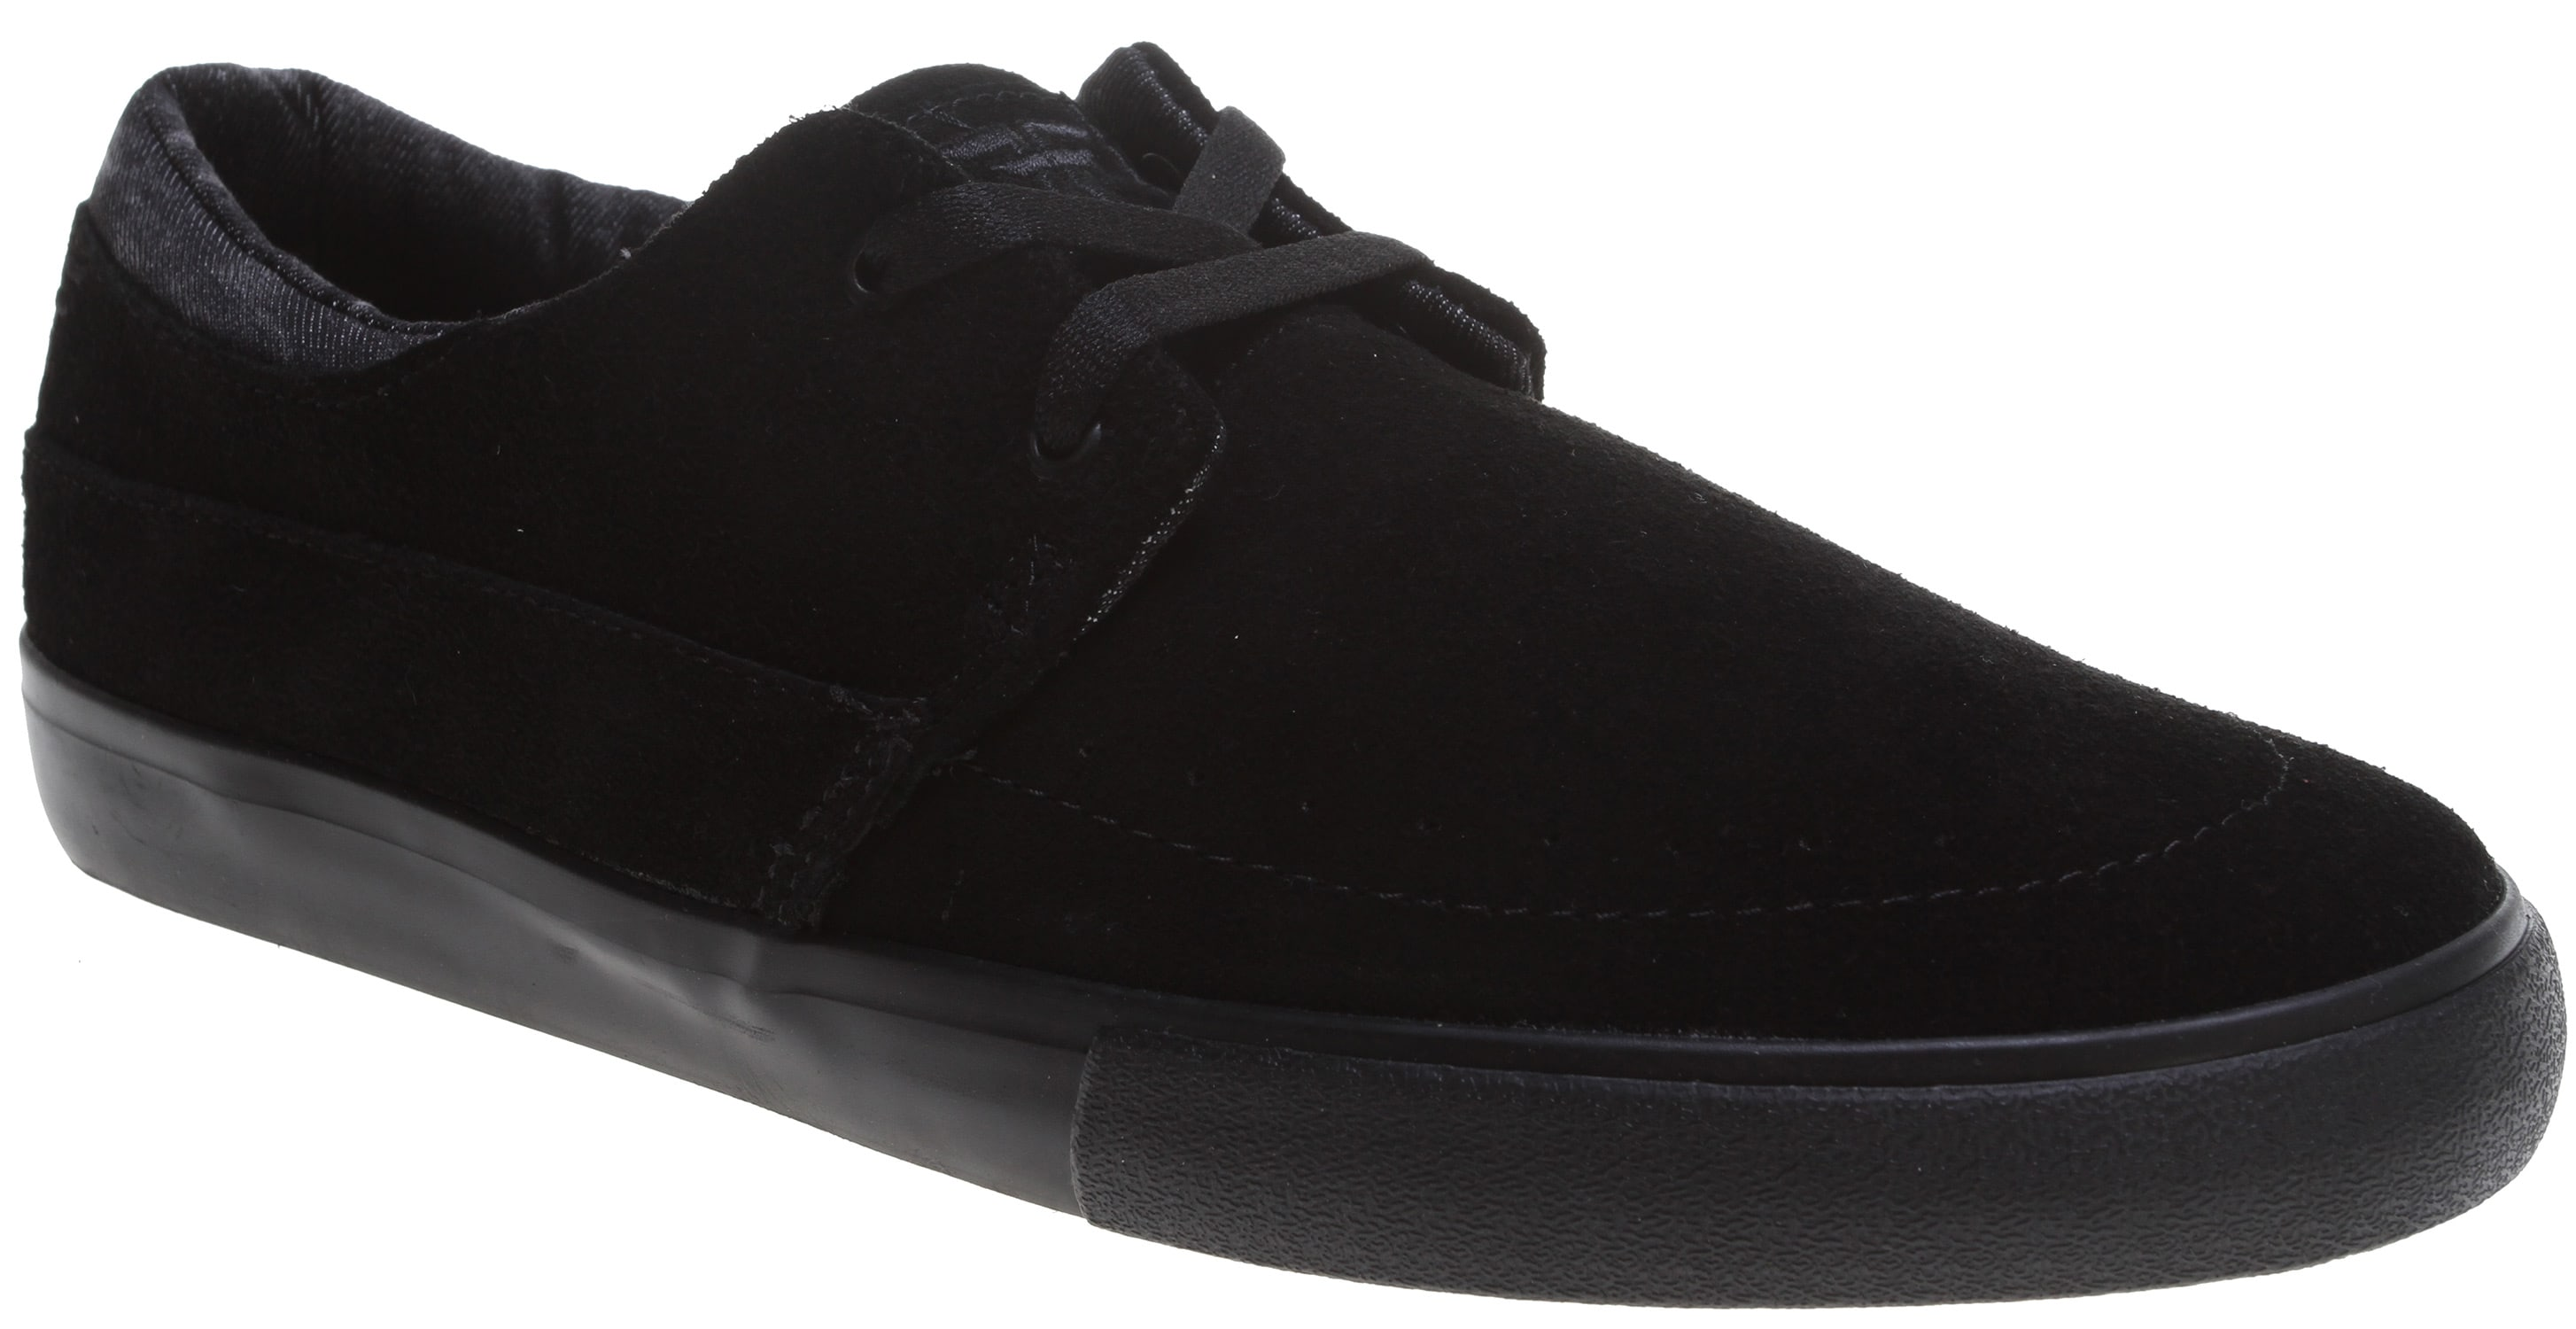 On Sale Fallen Roach Skate Shoes up to 50% off